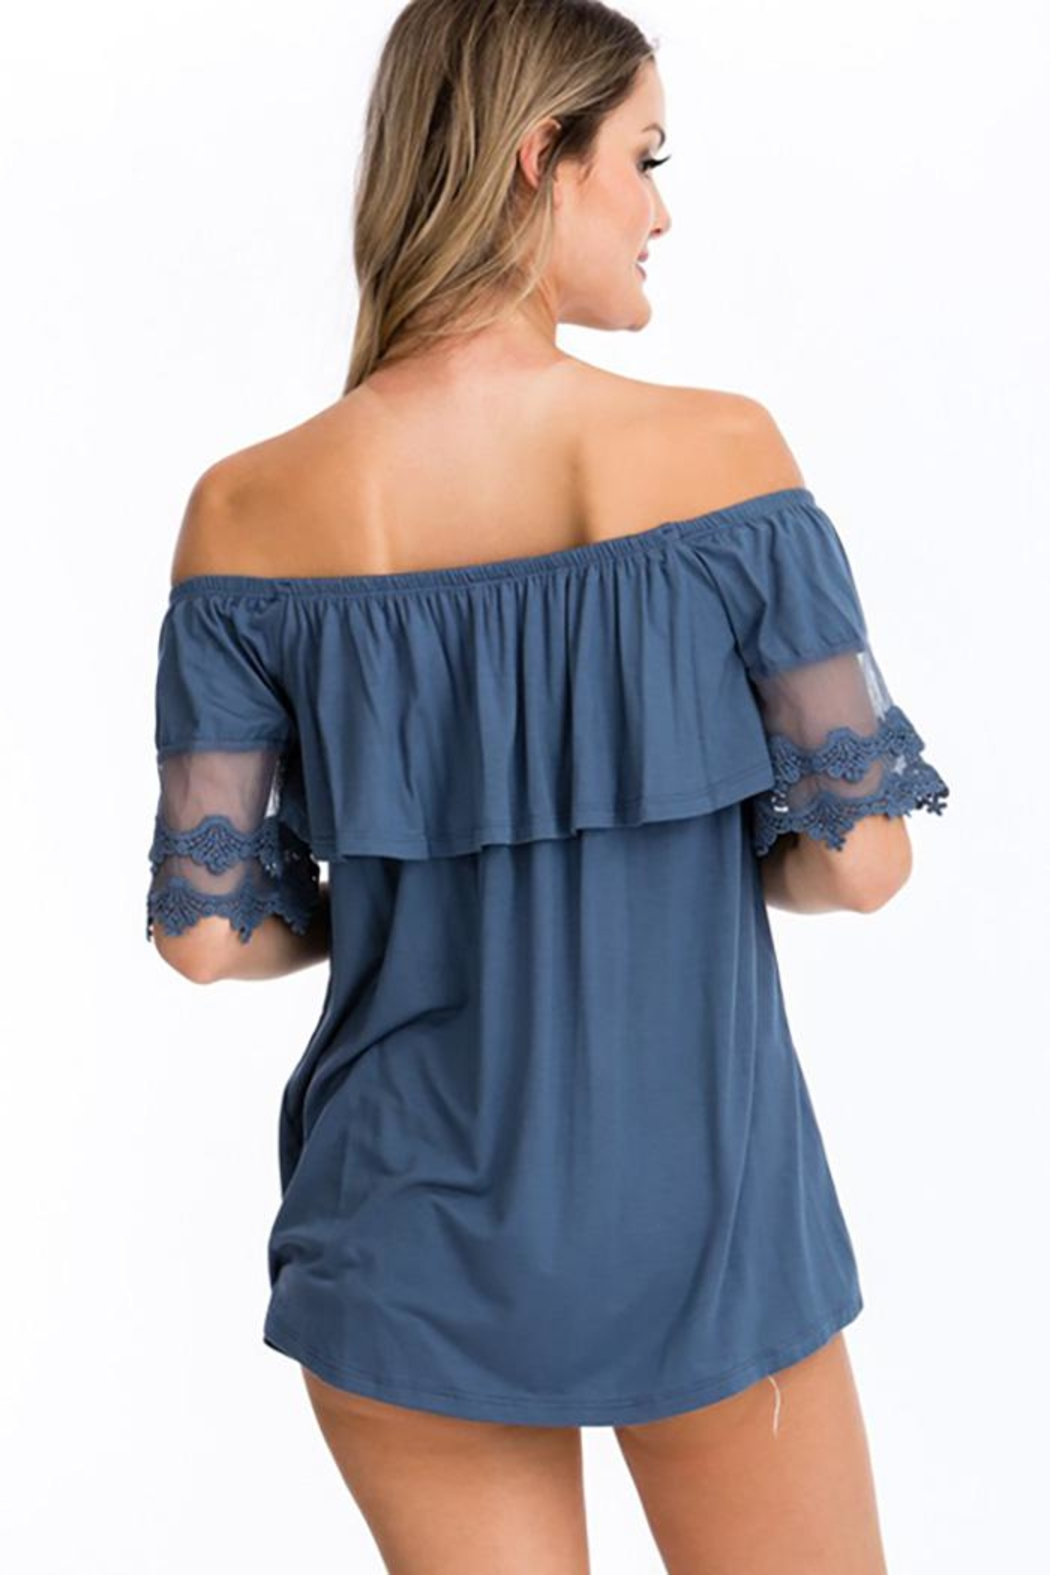 CY Fashion Off Shoulder Ruffled Top With Crochet Lace Detail - Front Full Image